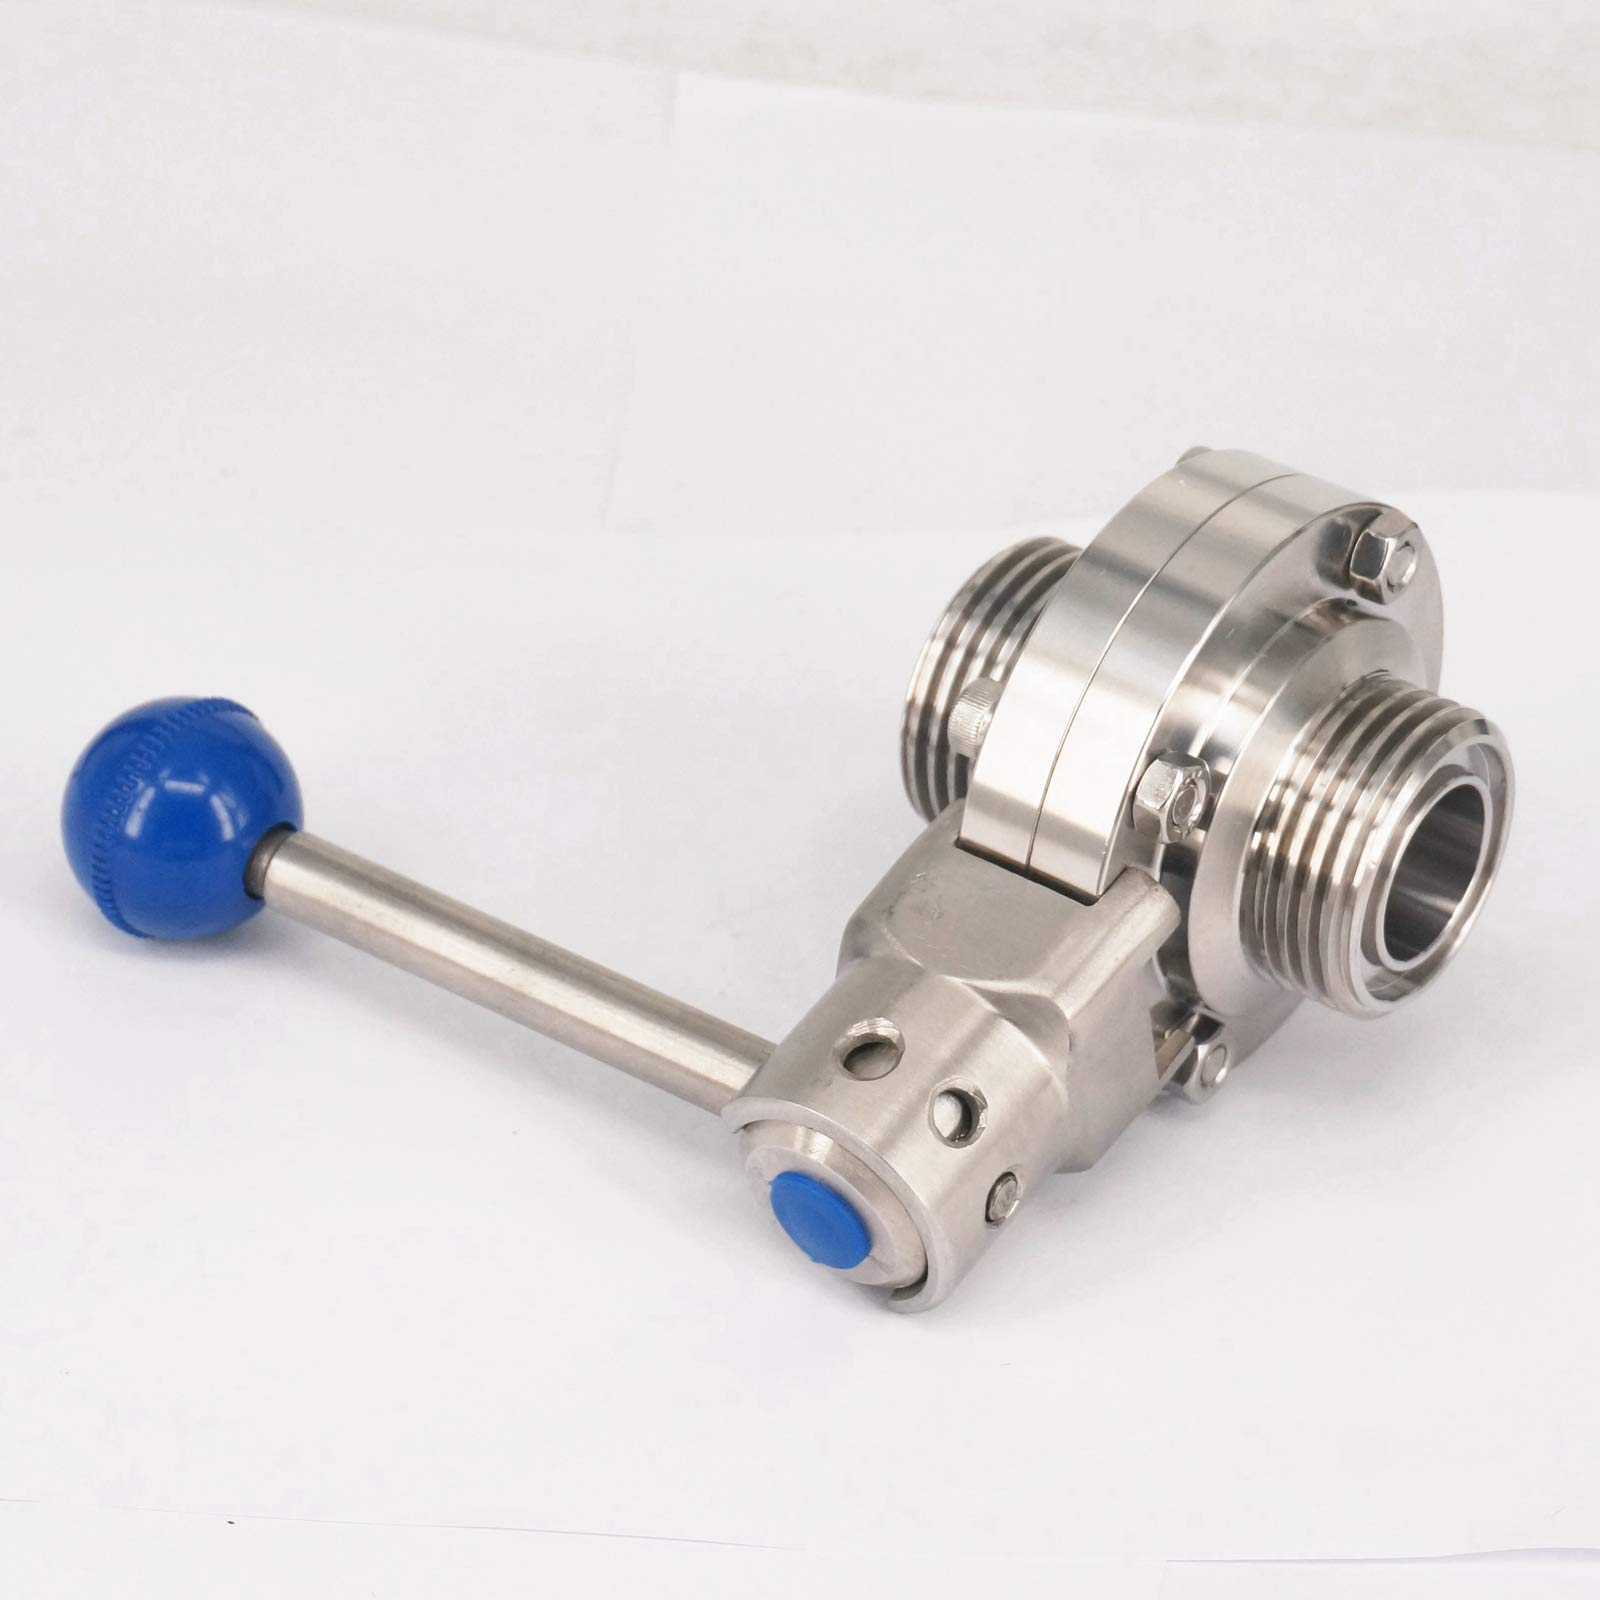 Sorekarain 1'' 25mm 304 Stainless Sanitary T-Type Thread Union Connection Butterfly Valve Brew Beer Dairy Product